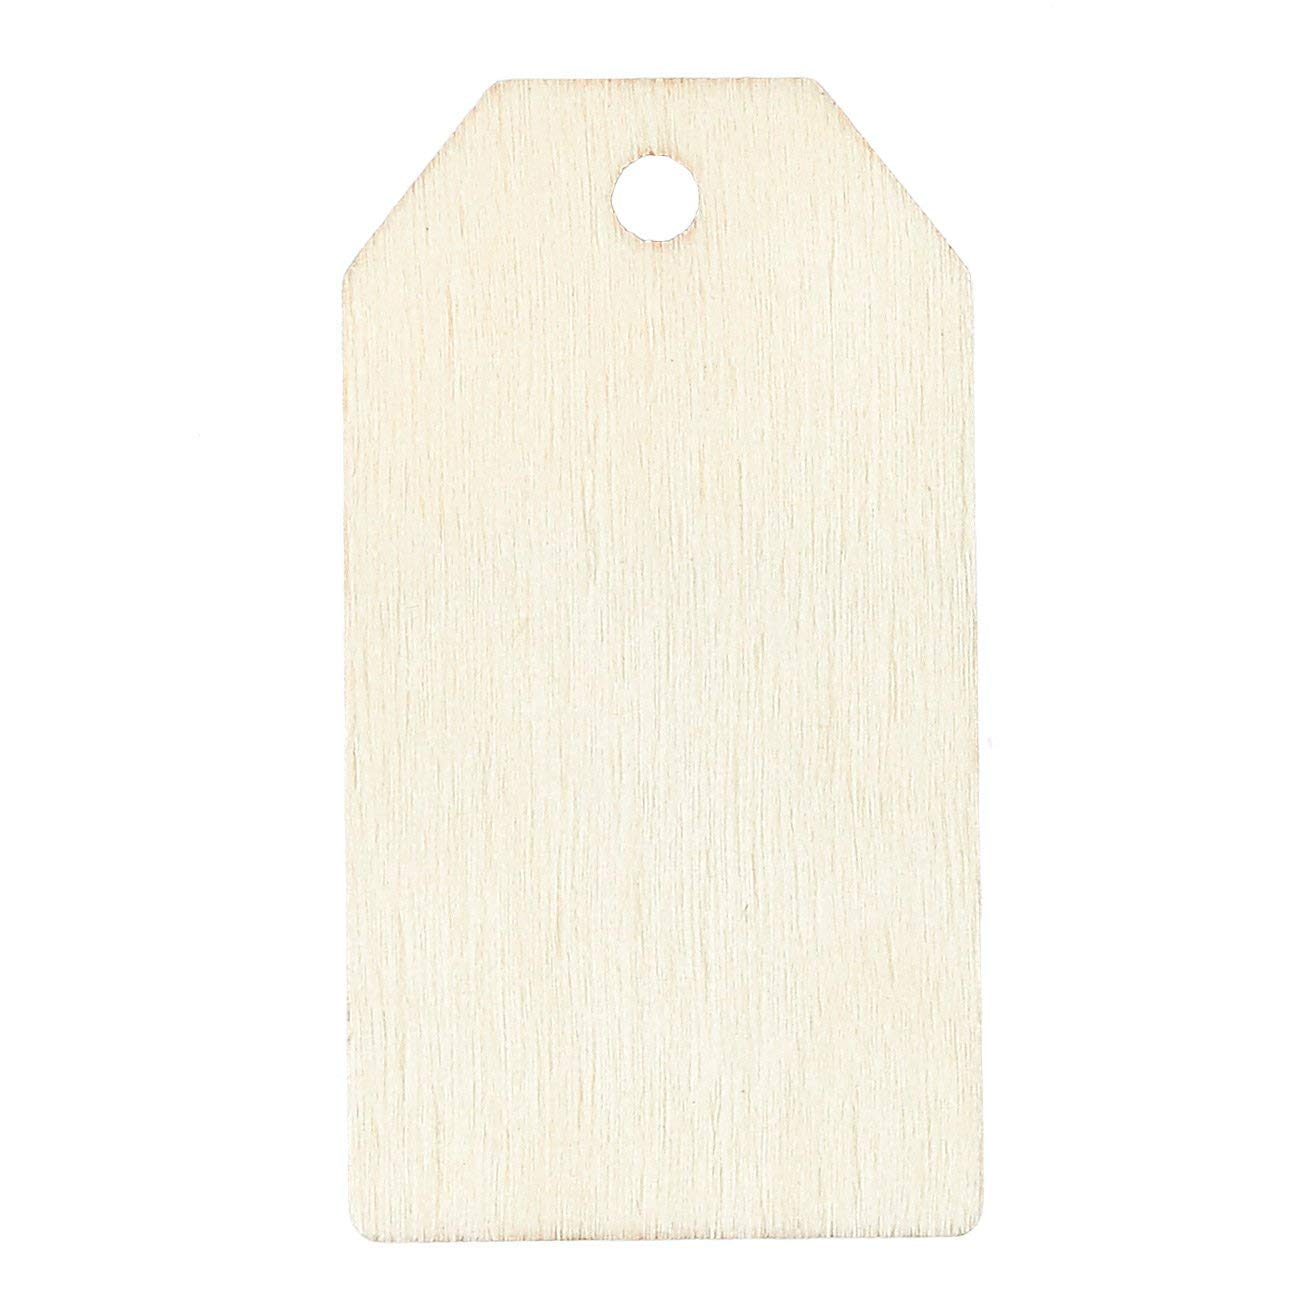 Unfinished Wood Tag 60-Pack Wooden Gift Tags Natural Rustic Wood Craft Labels for Home DIY Supplies 2.25 x 1.25 inches Wedding Decoration